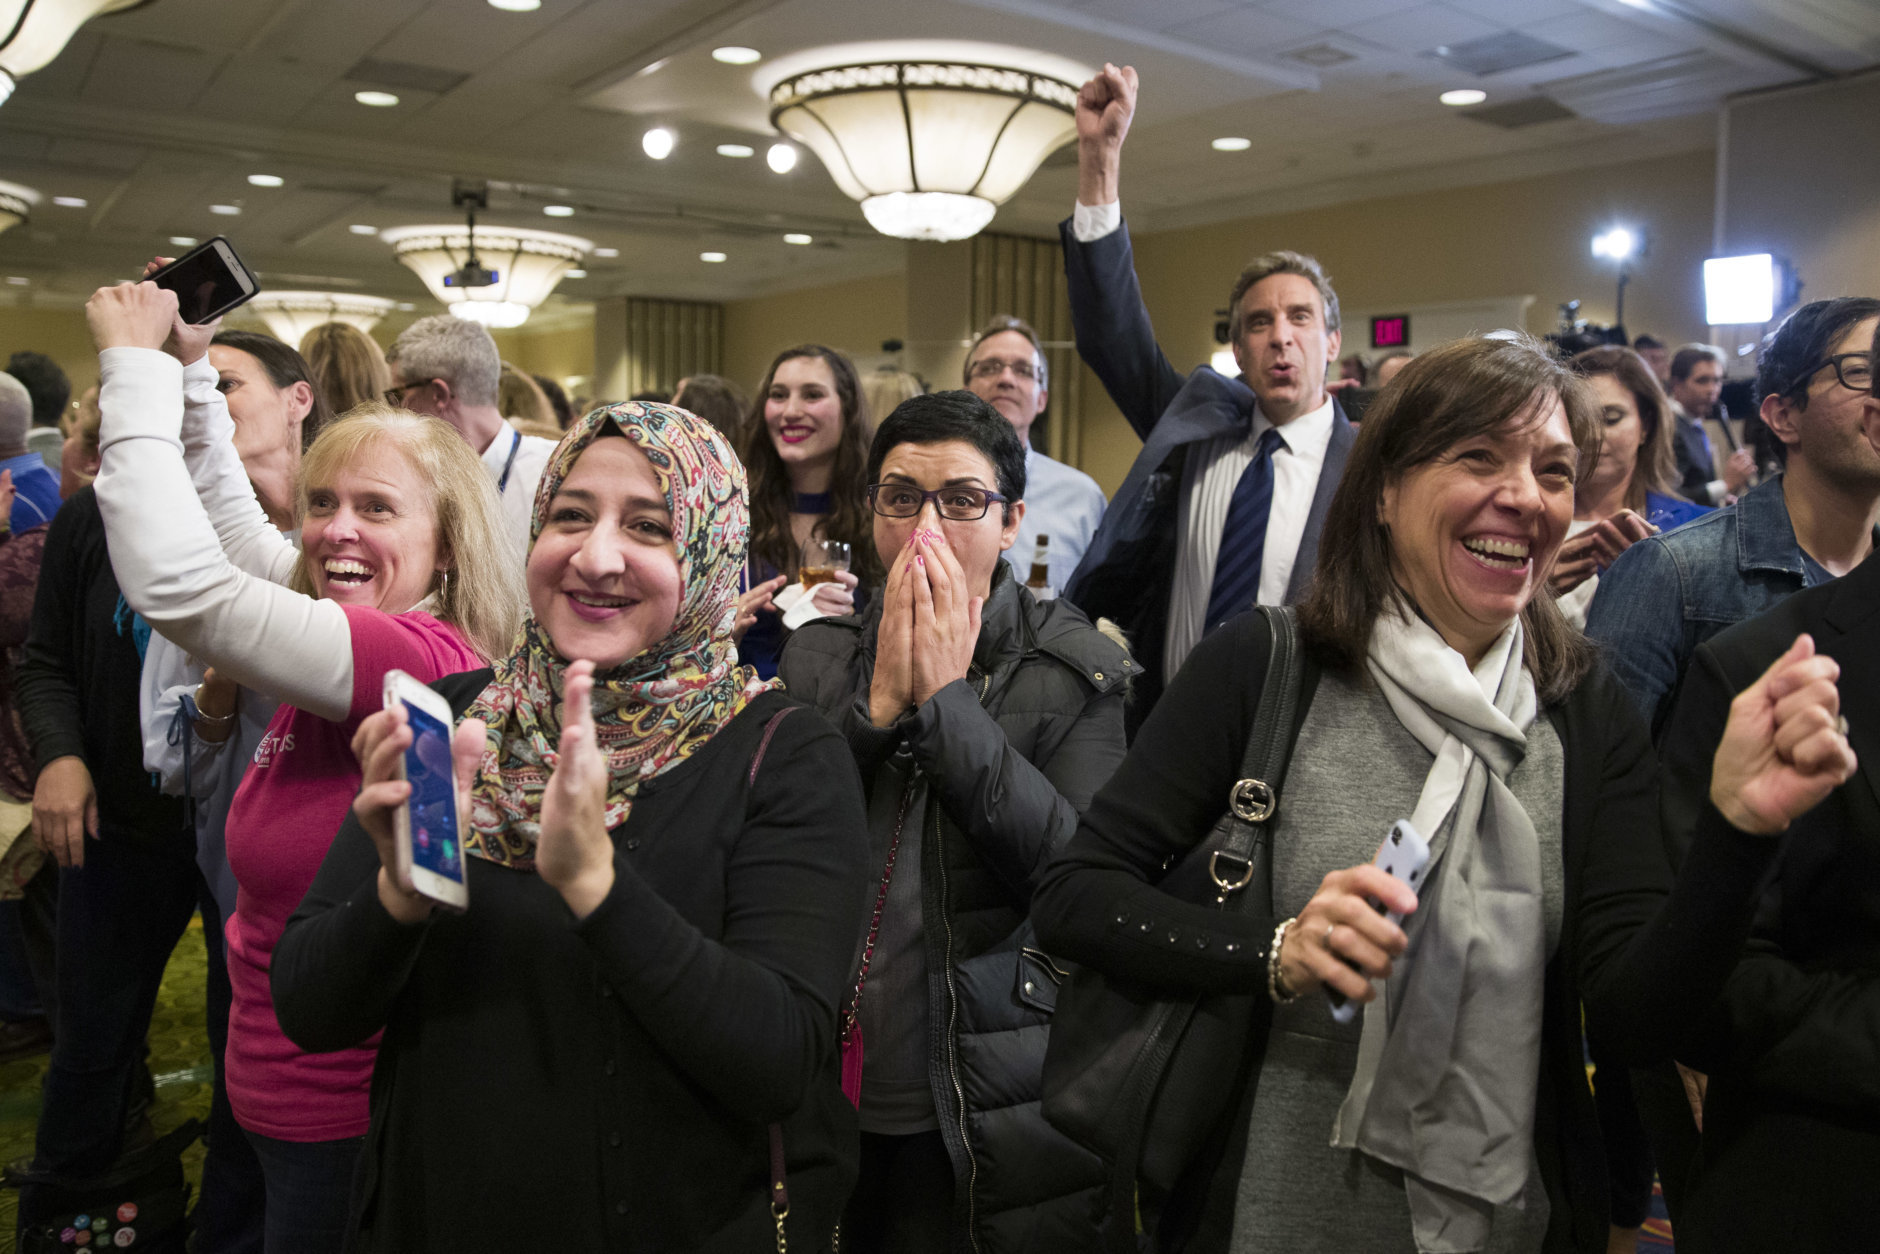 Supporters cheer as they watch returns at an election night party for Democrat congressional candidate Jennifer Wexton, Tuesday, Nov. 6, 2018, in Dulles, Va. (AP Photo/Alex Brandon)